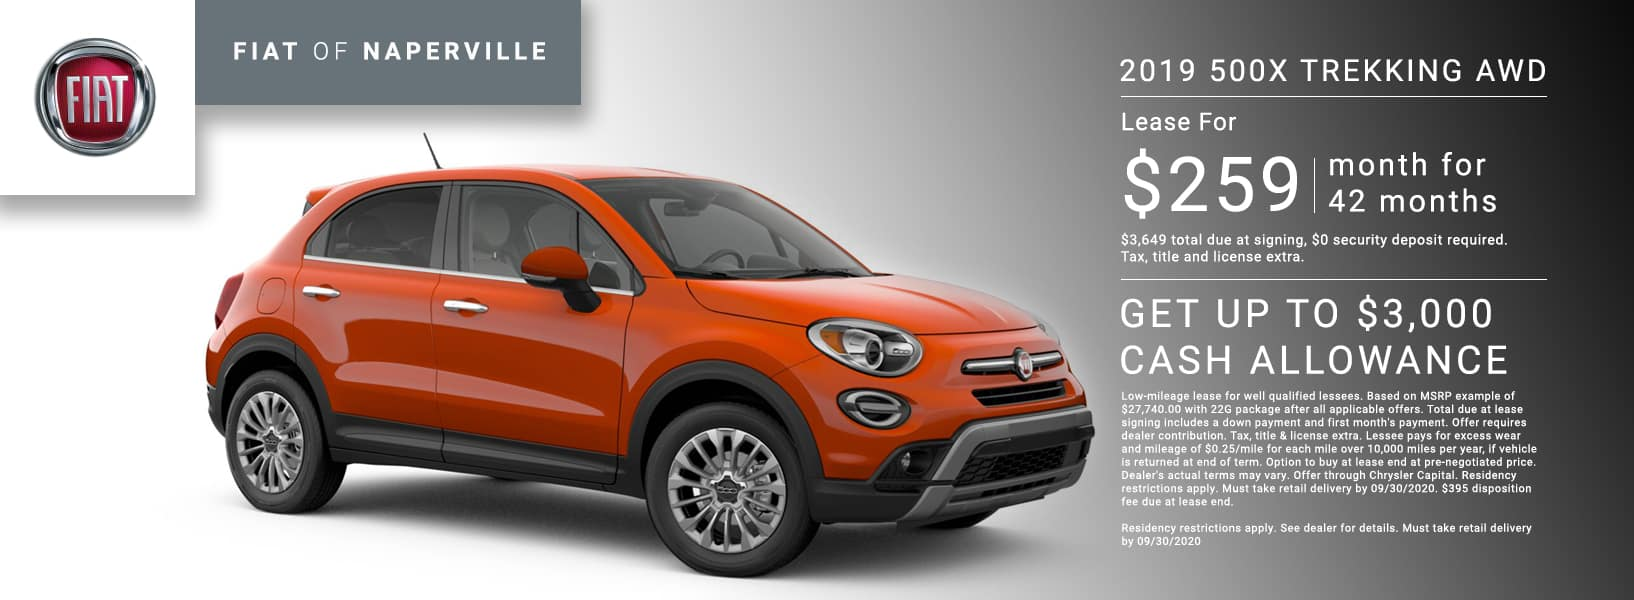 Lease a 2019 500X Trekking for $259/mo